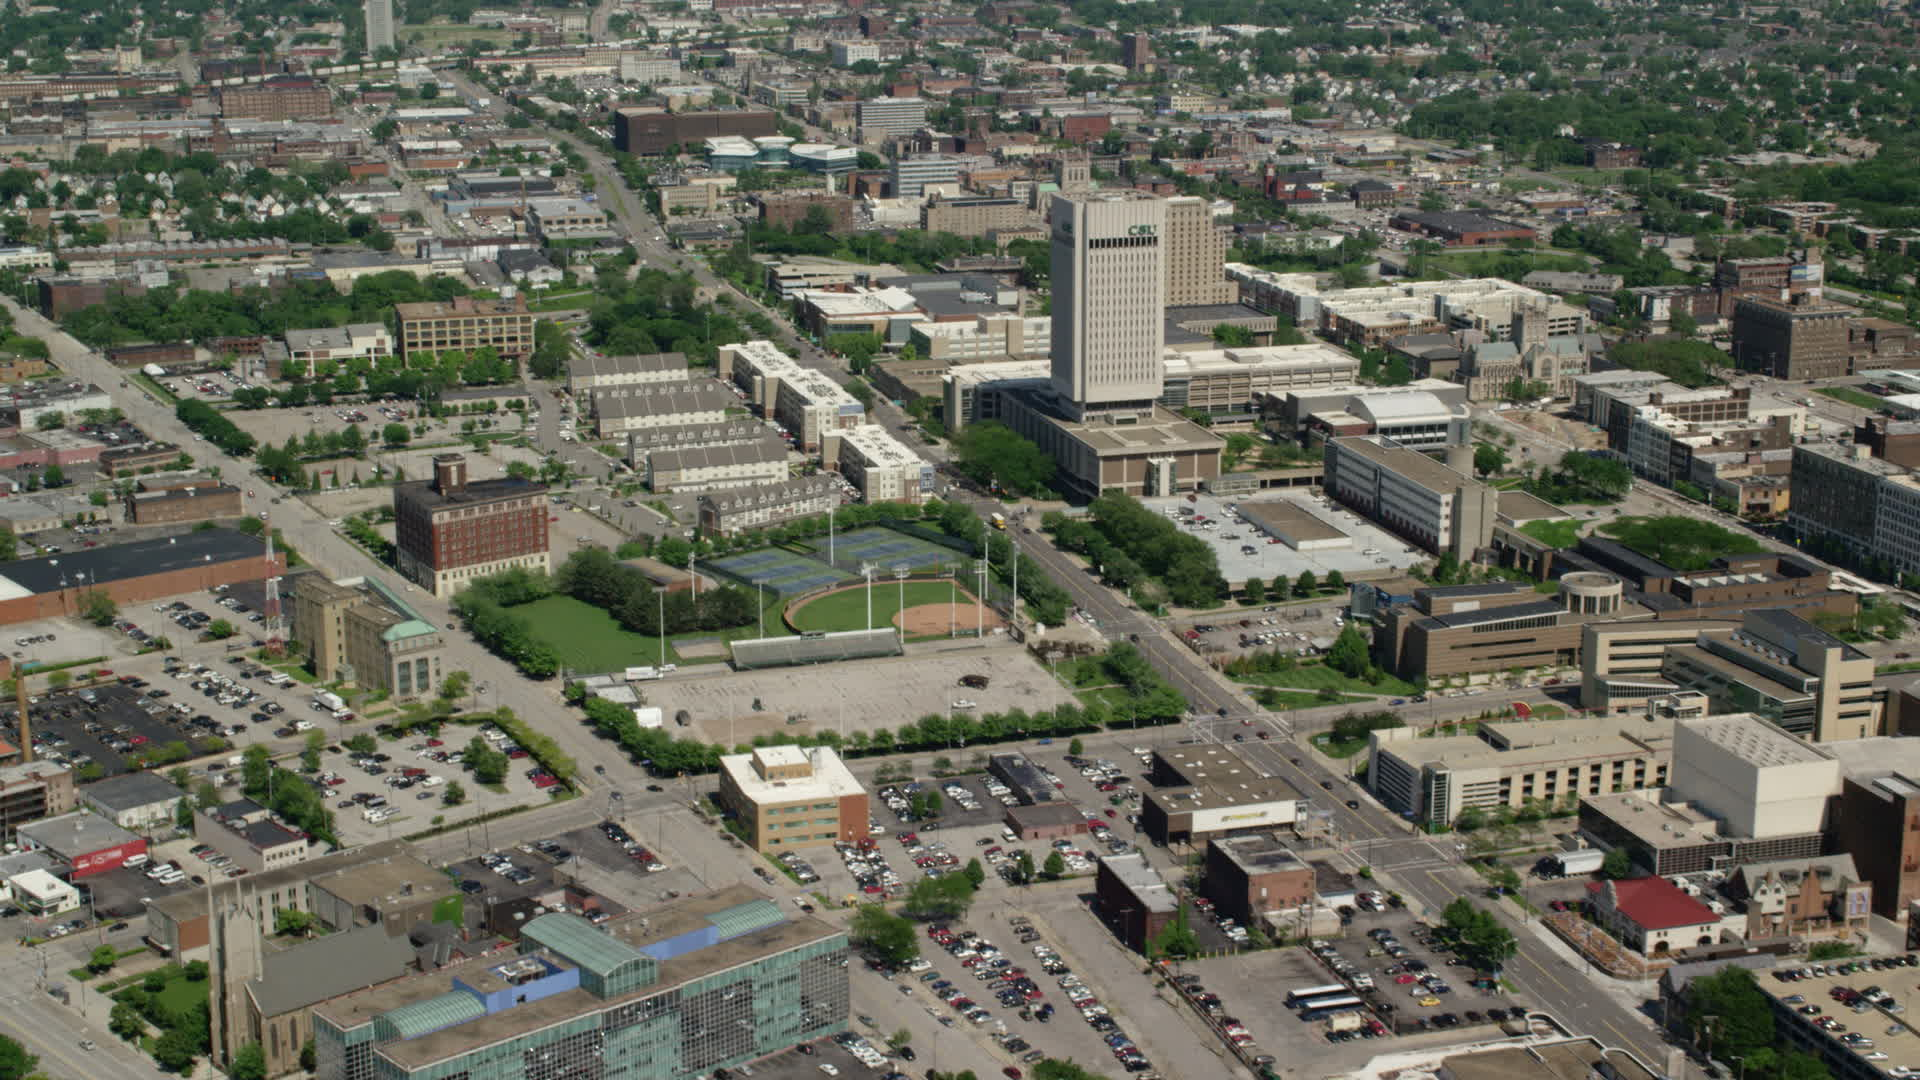 5K stock footage aerial video of the campus of Cleveland State University  in Cleveland, Ohio Aerial Stock Footage AX106_253 | Axiom Images